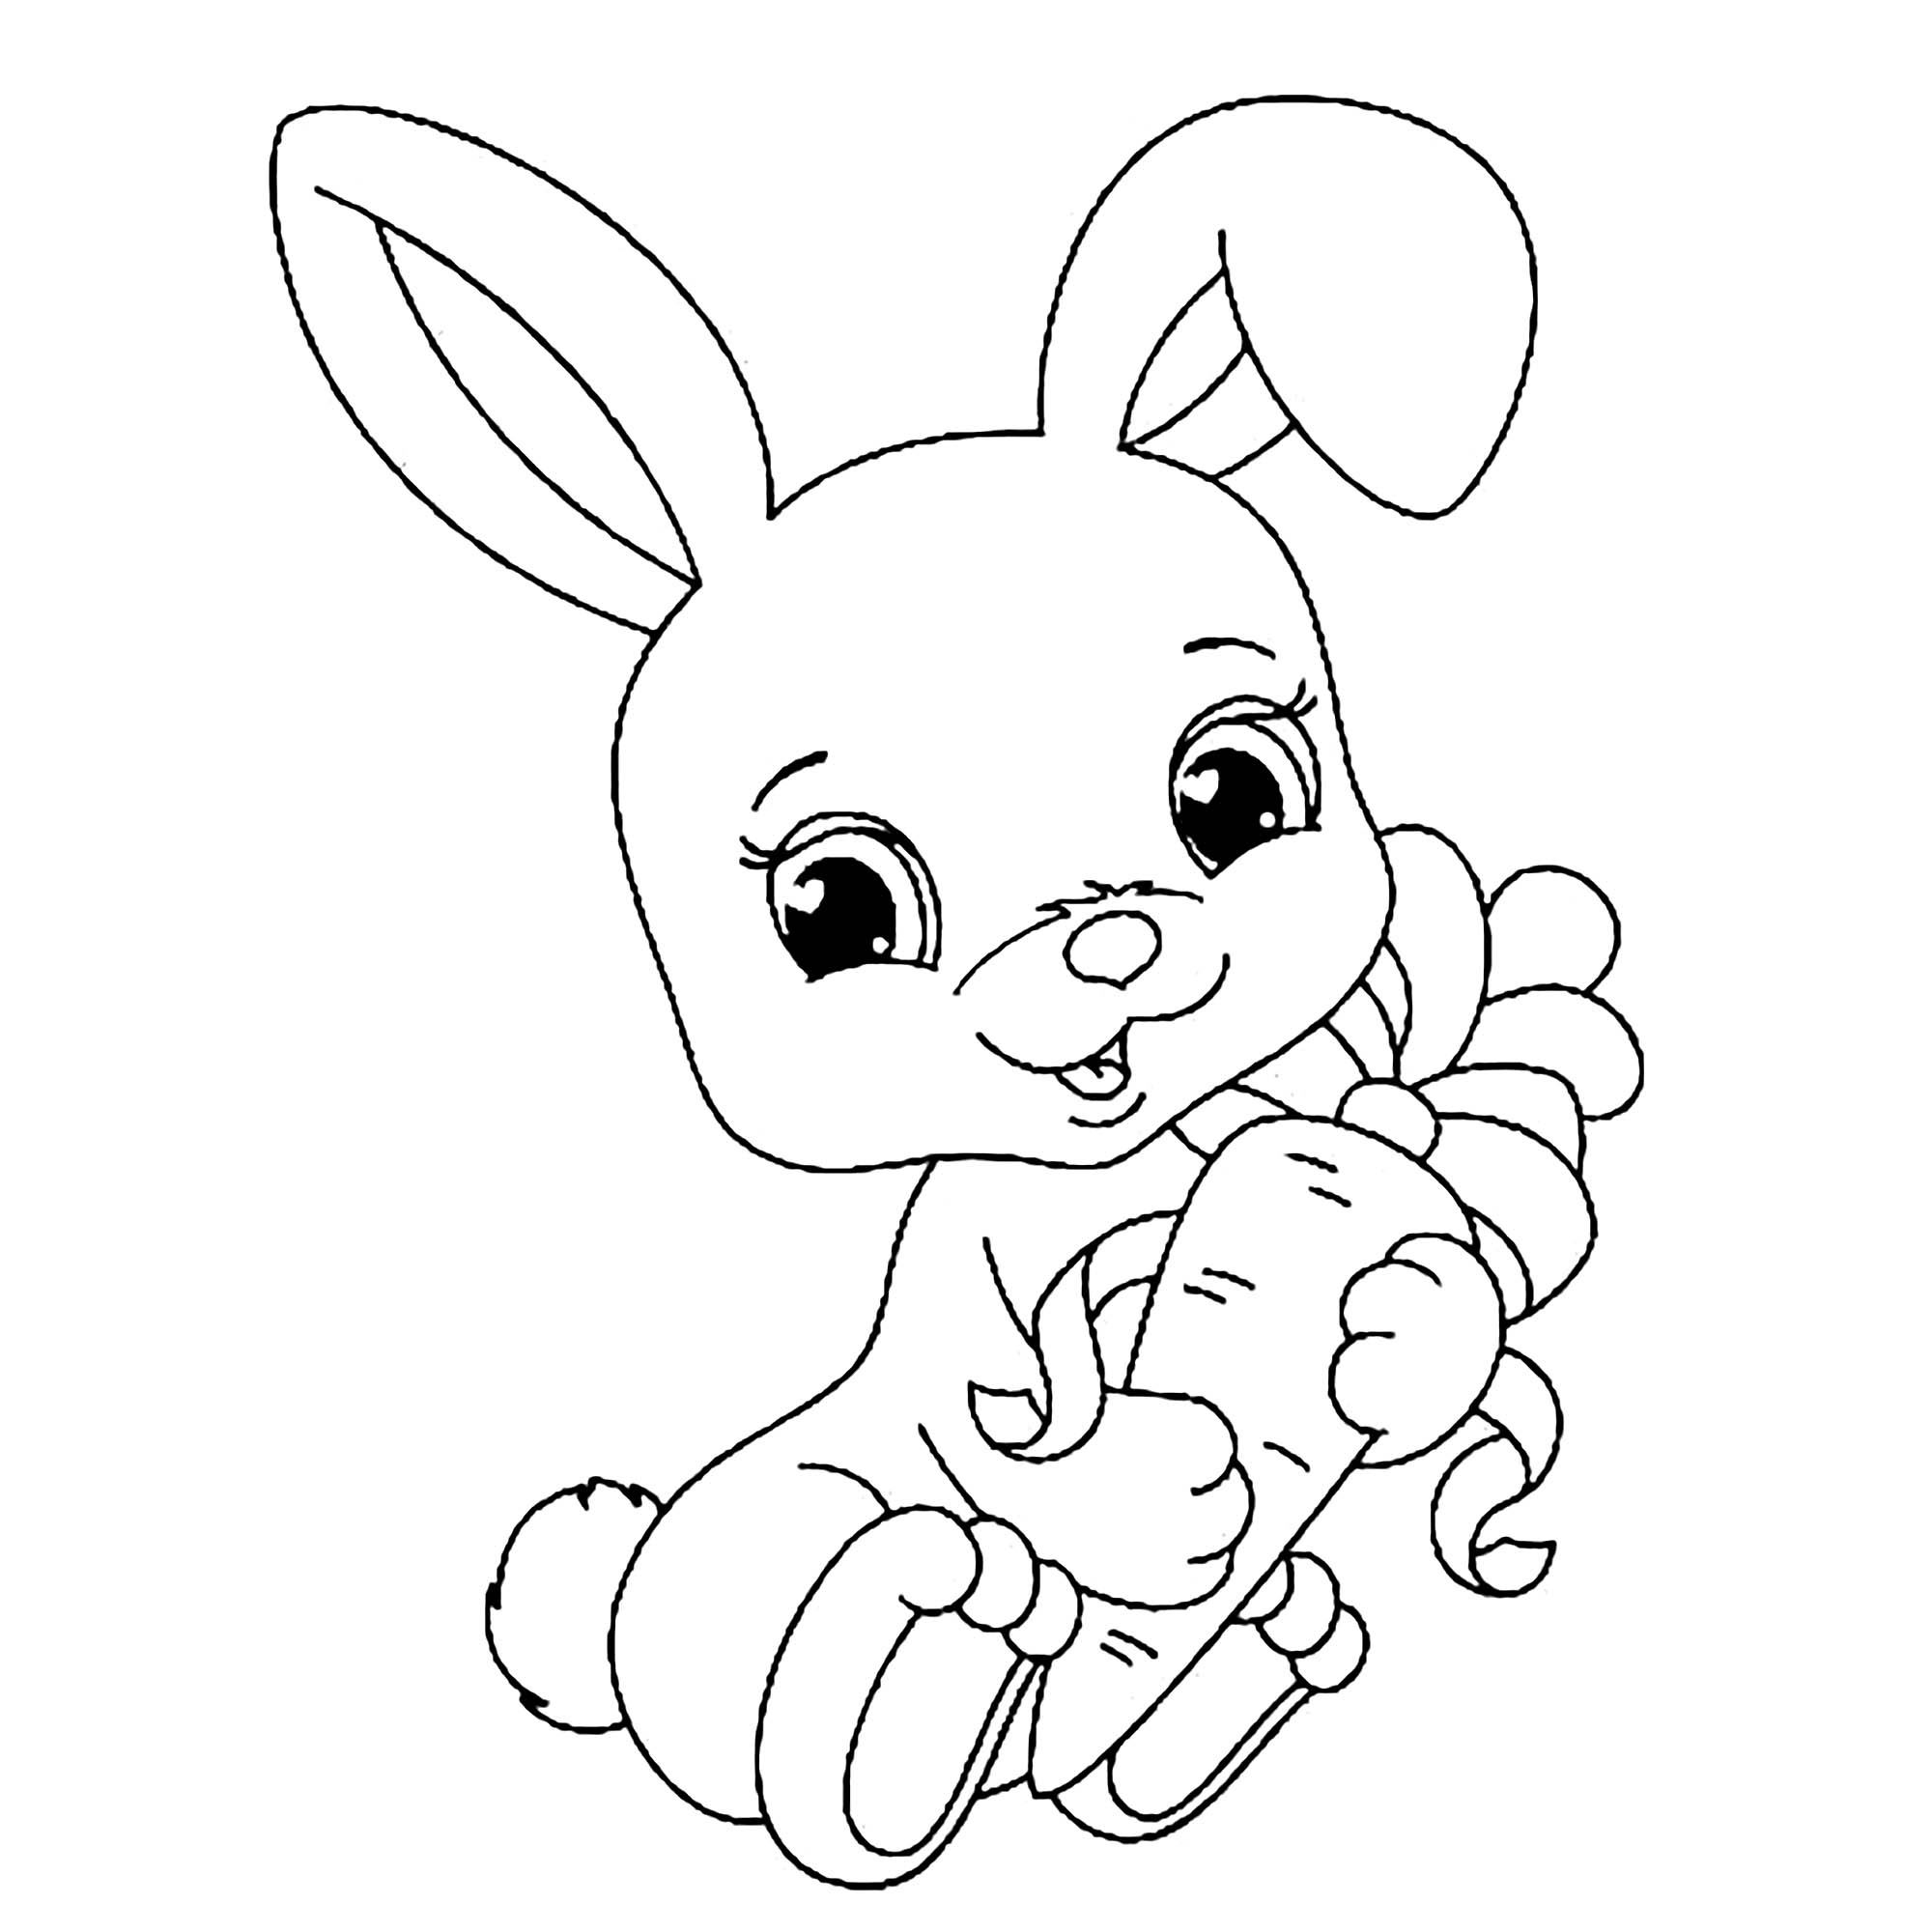 bunny printable 60 rabbit shape templates and crafts colouring pages bunny printable